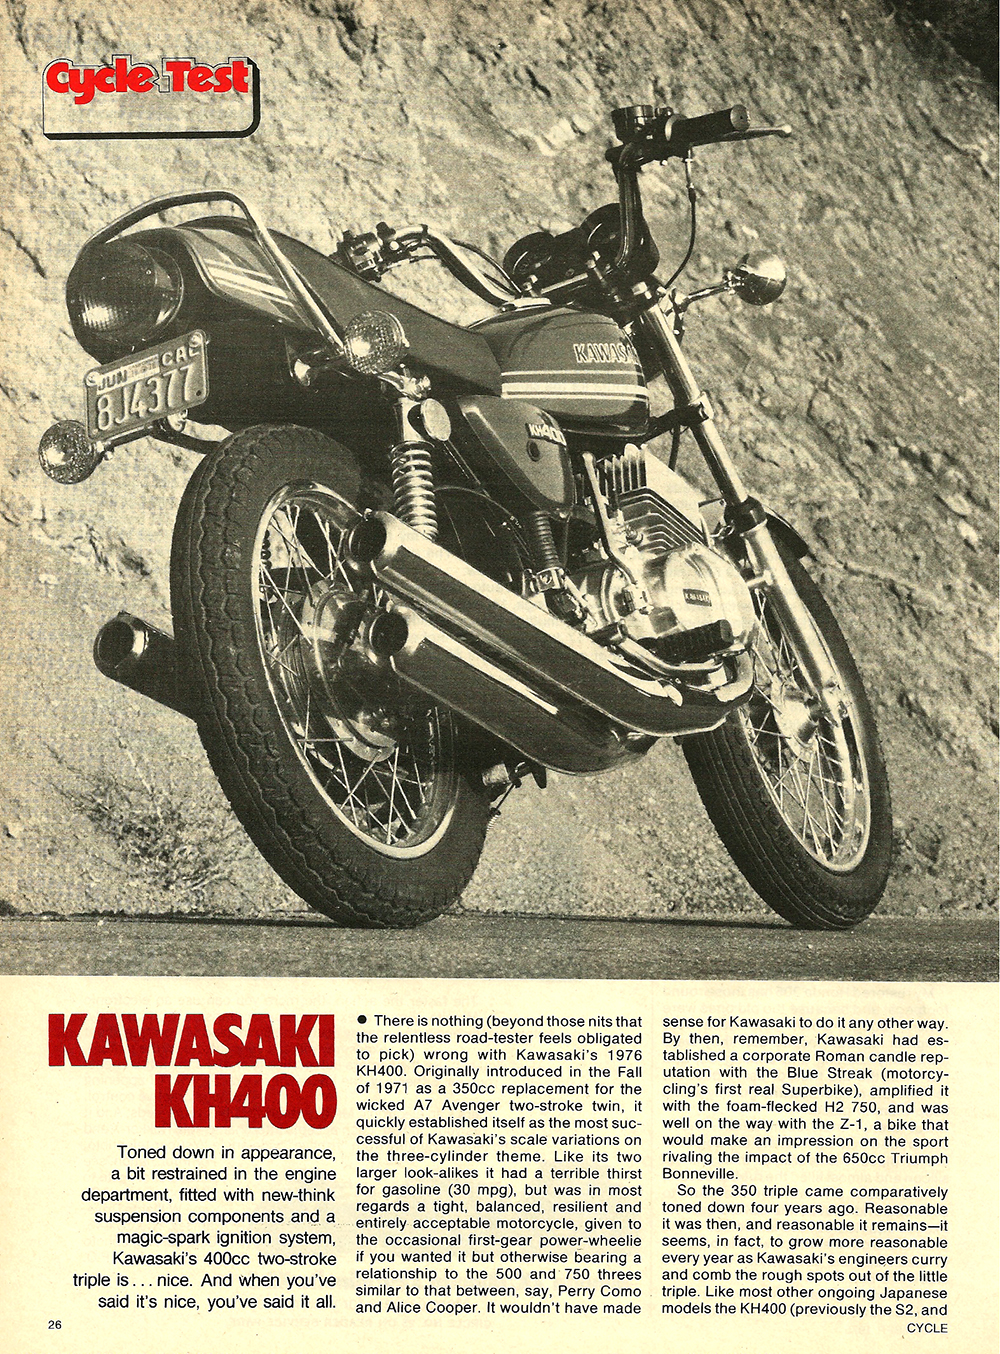 1976 Kawasaki KH400 road test 1.jpg